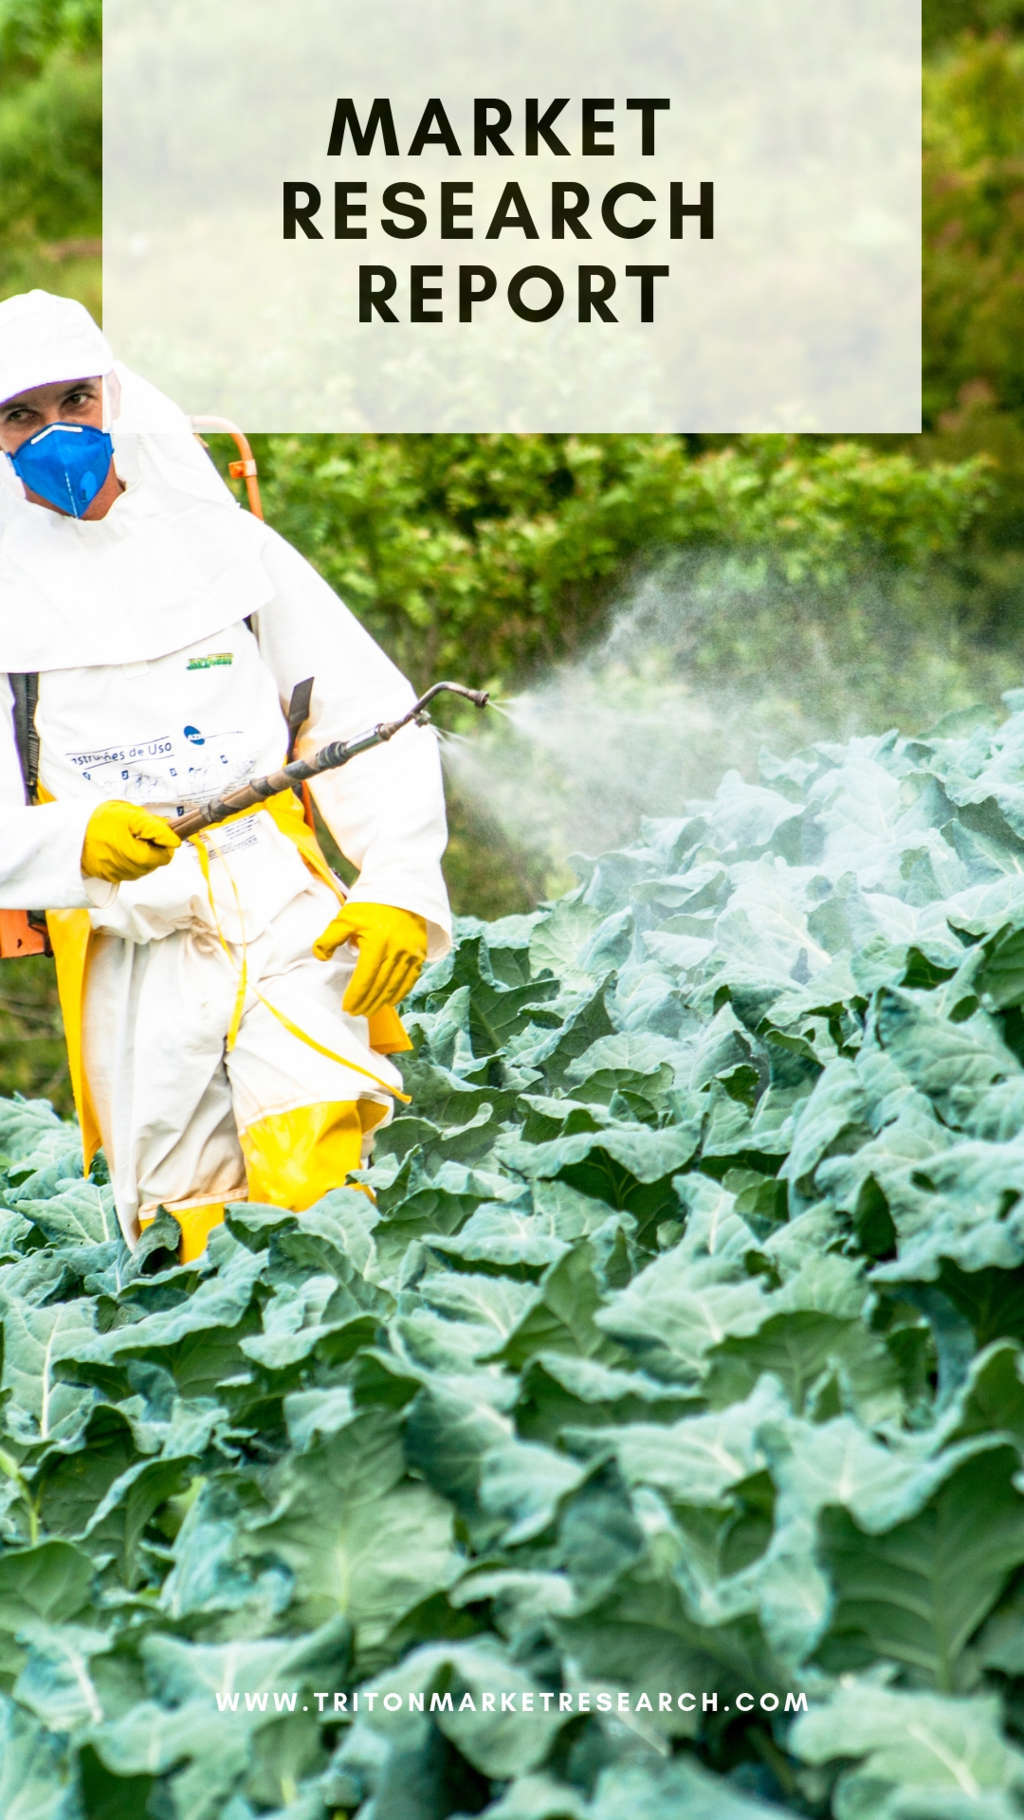 MIDDLE EAST AND AFRICA BIOPESTICIDES MARKET 2019-2027